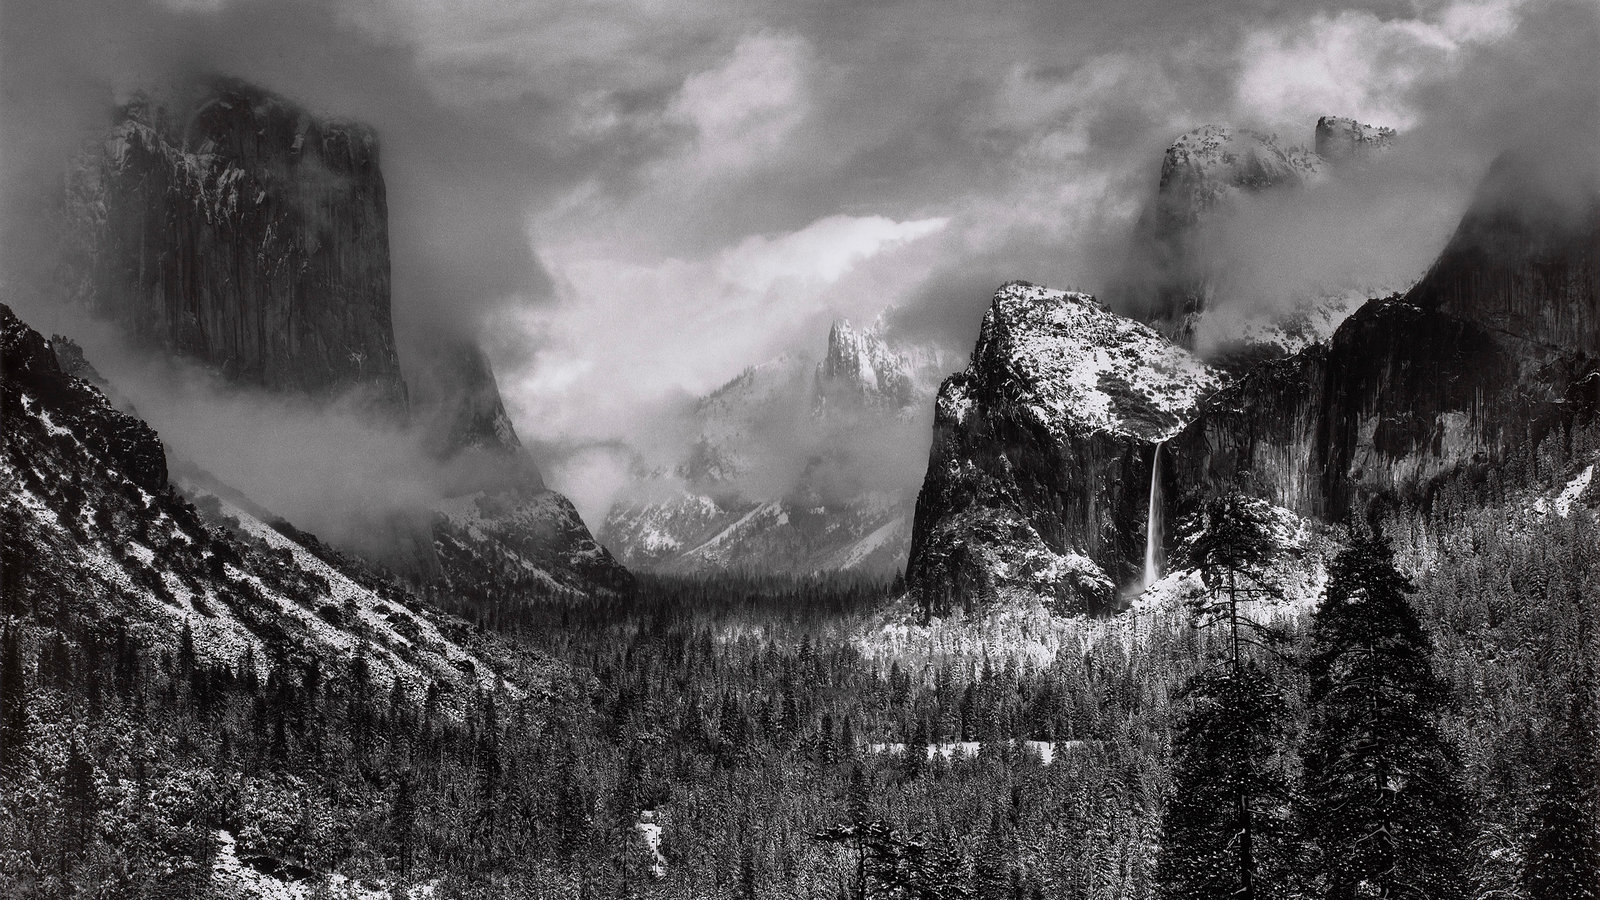 �Clearing Winter Storm, Yosemite National Park,� by Ansel Adams